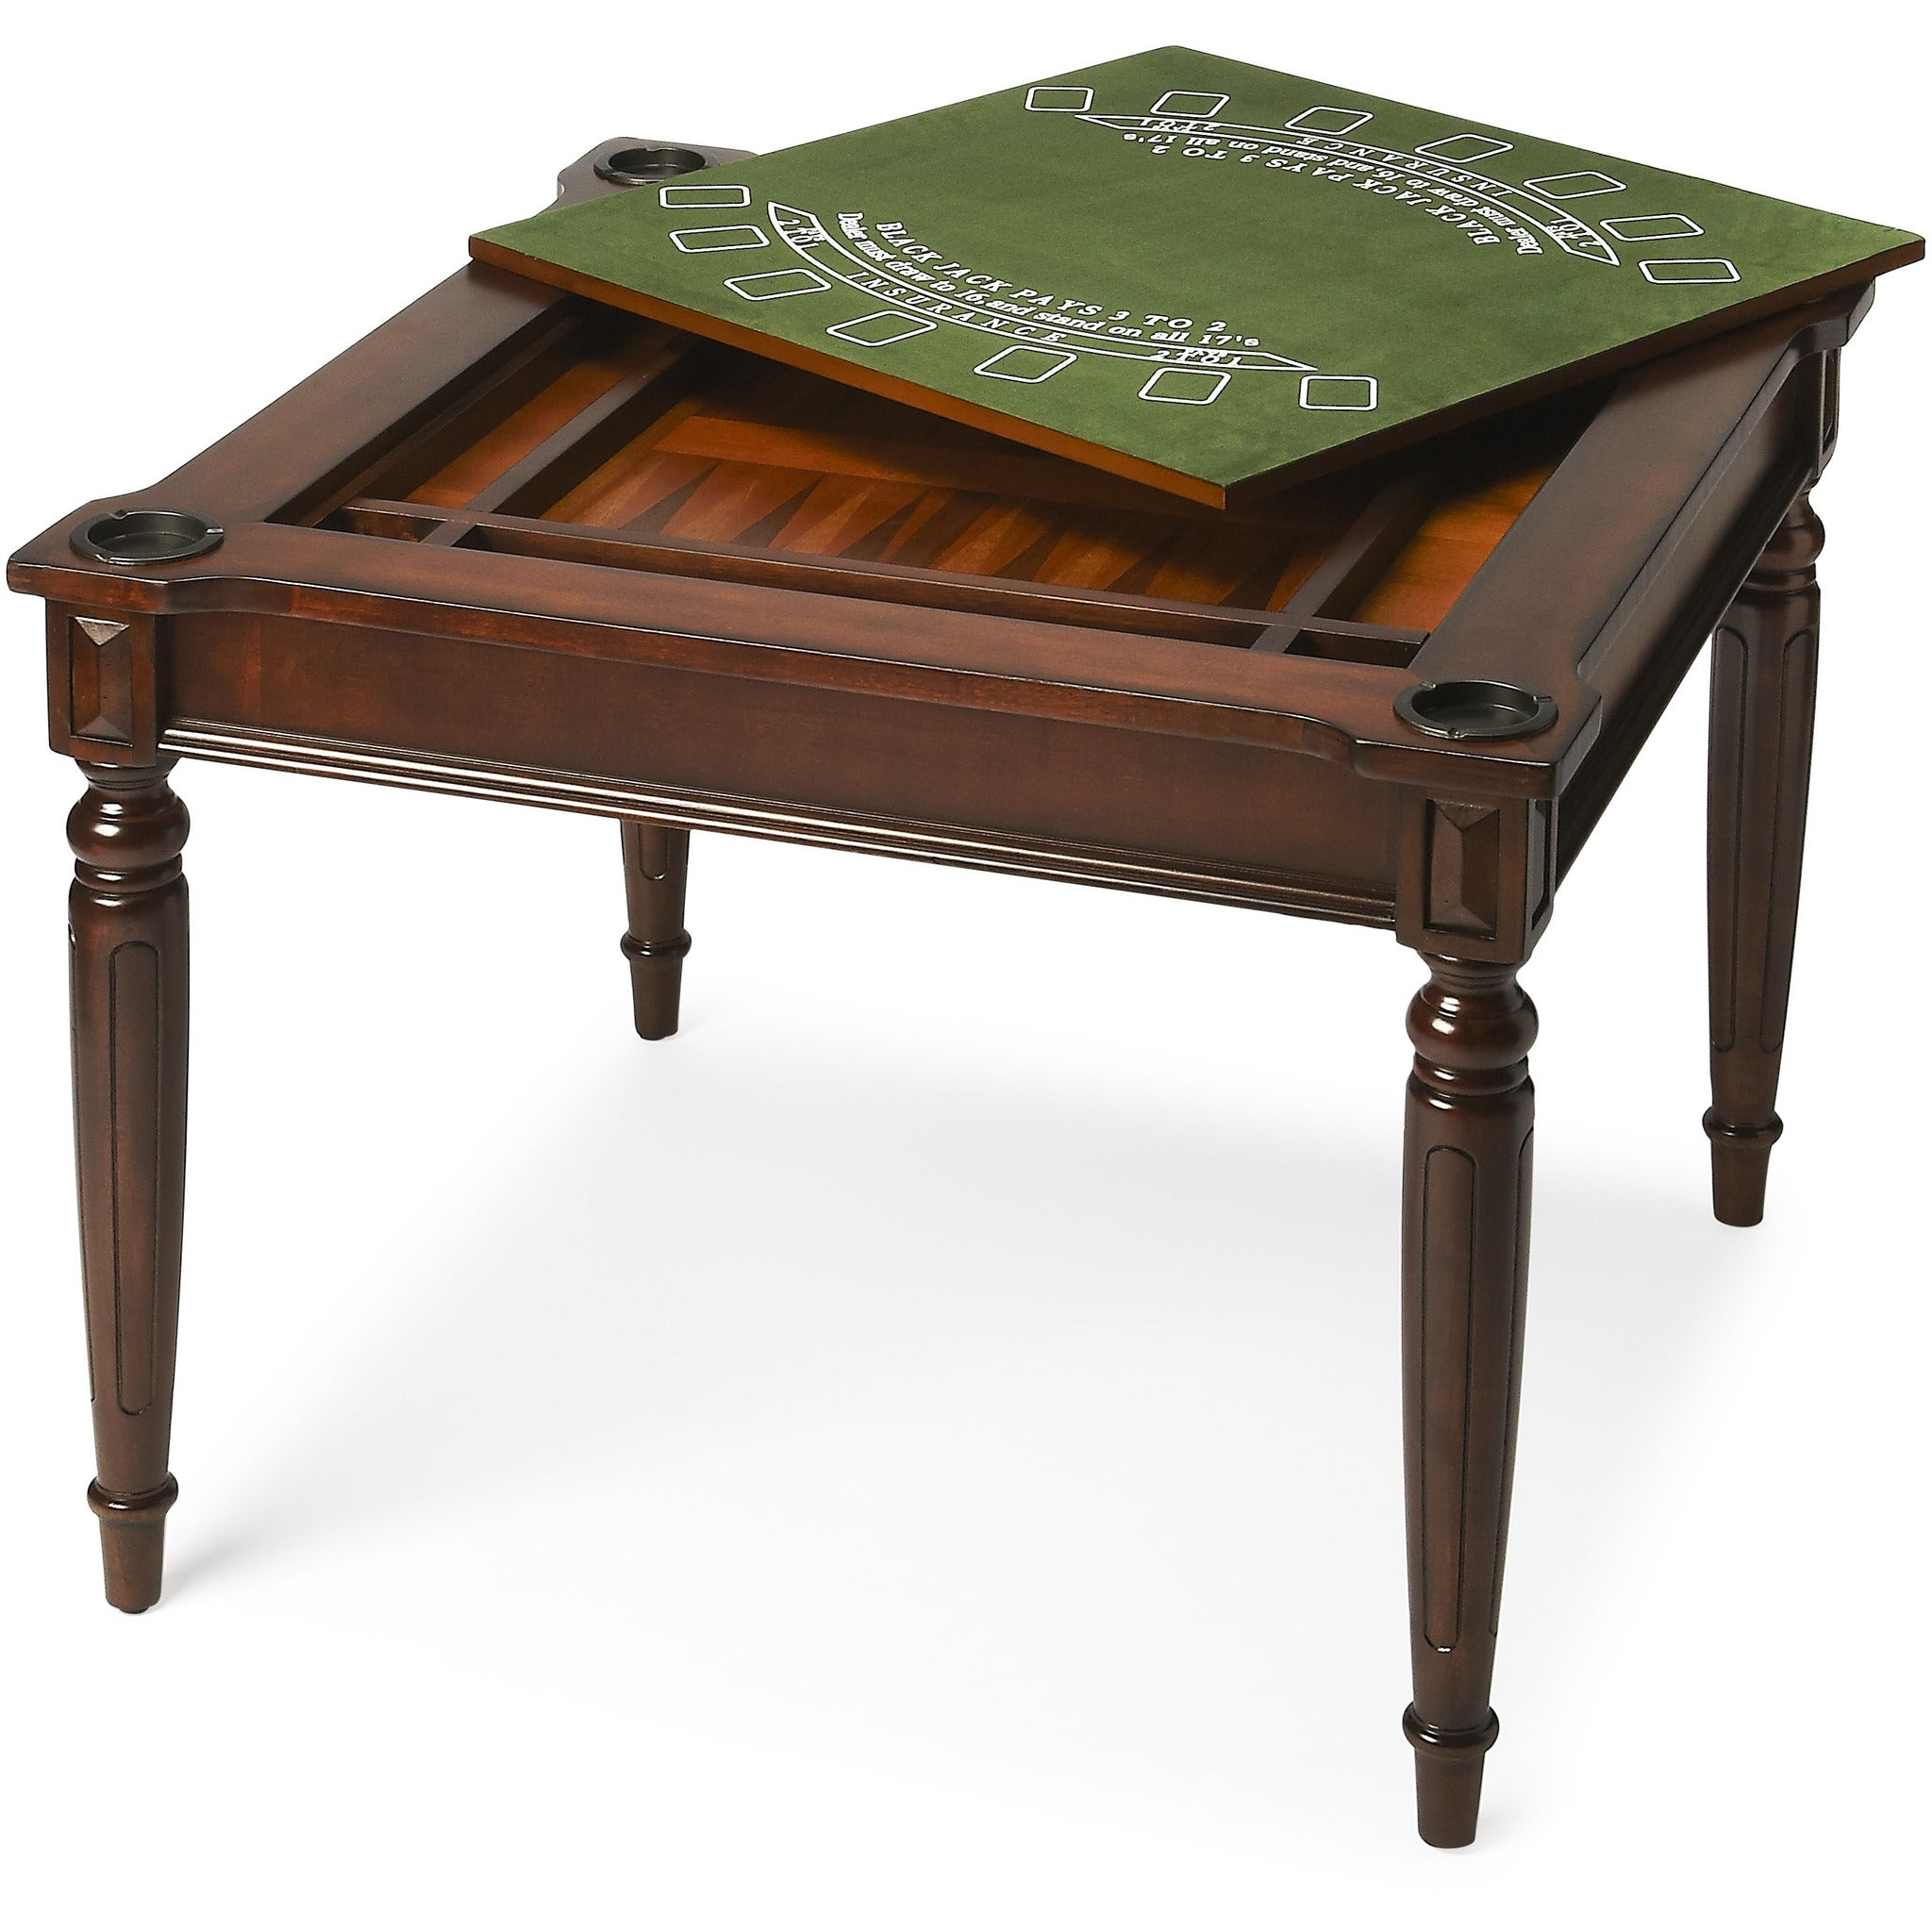 butler AMERICANA POKER TABLES